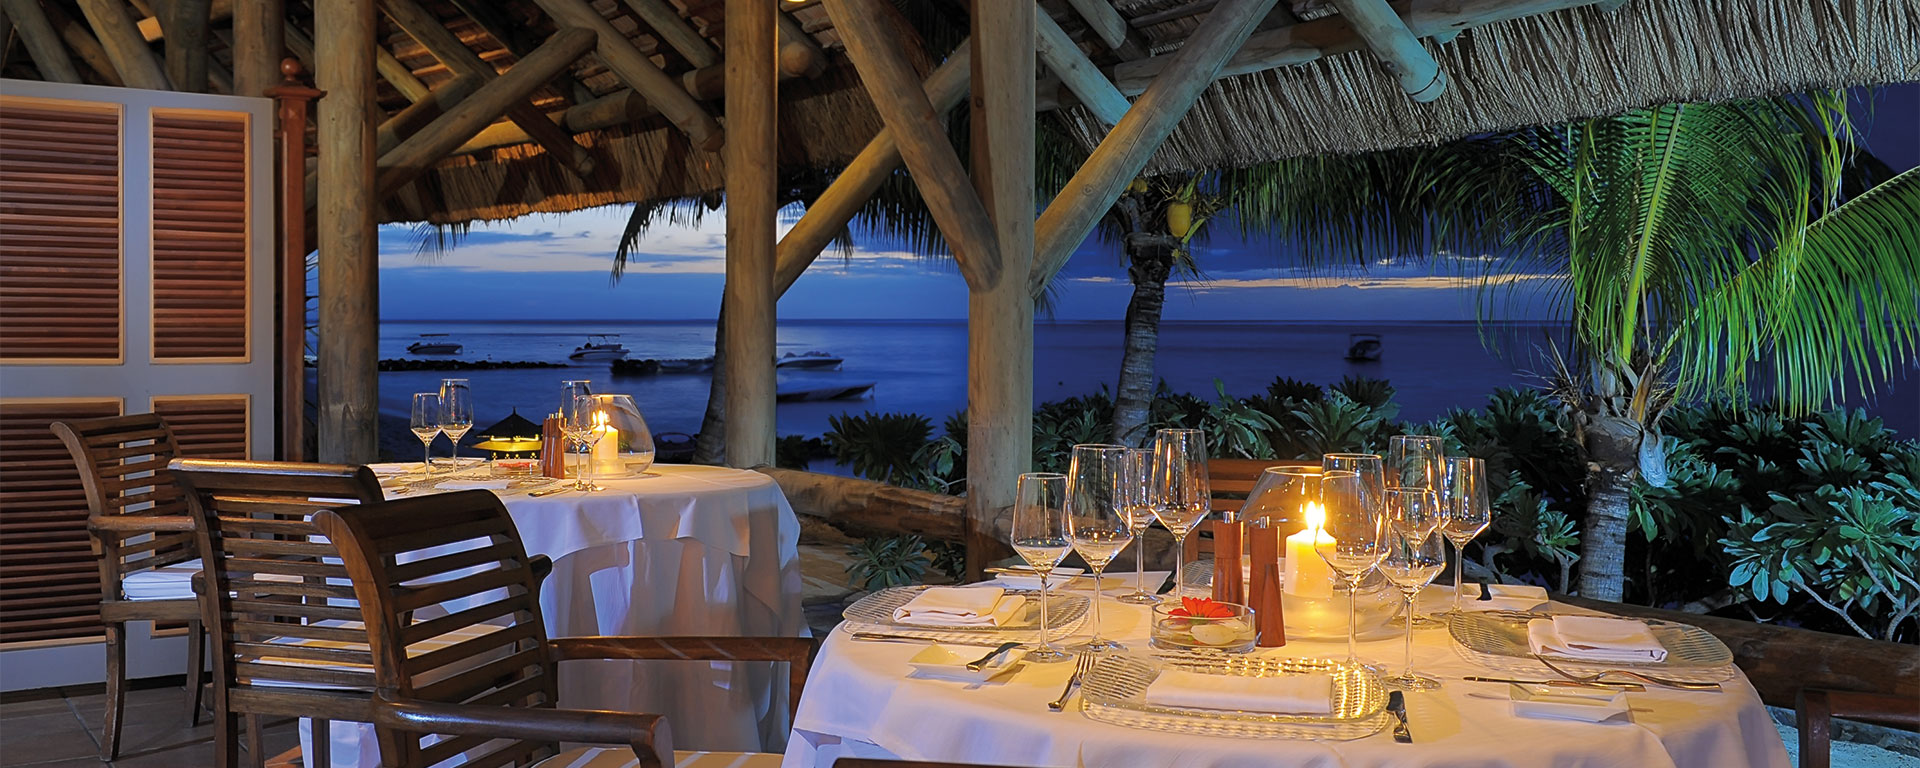 Culinary Paradise found at Paradis Beachcomber